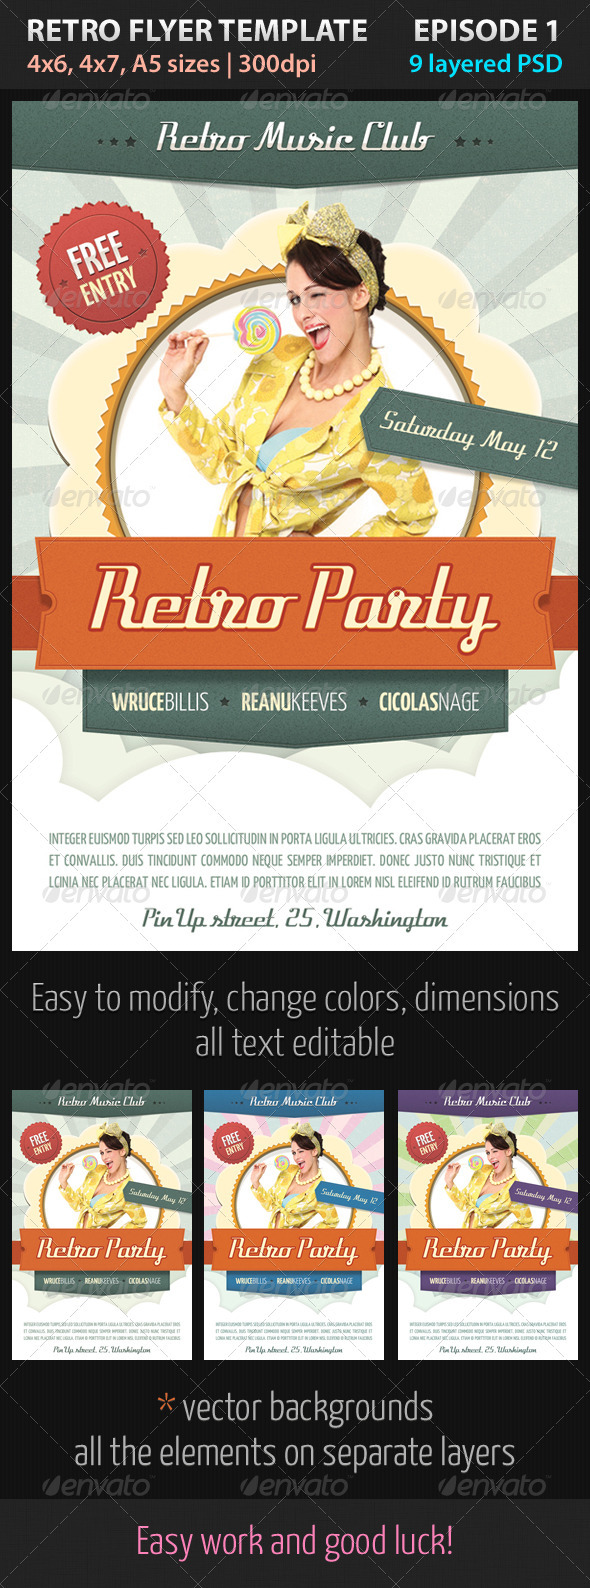 Retro Flyer Template Episode 1 - Clubs & Parties Events